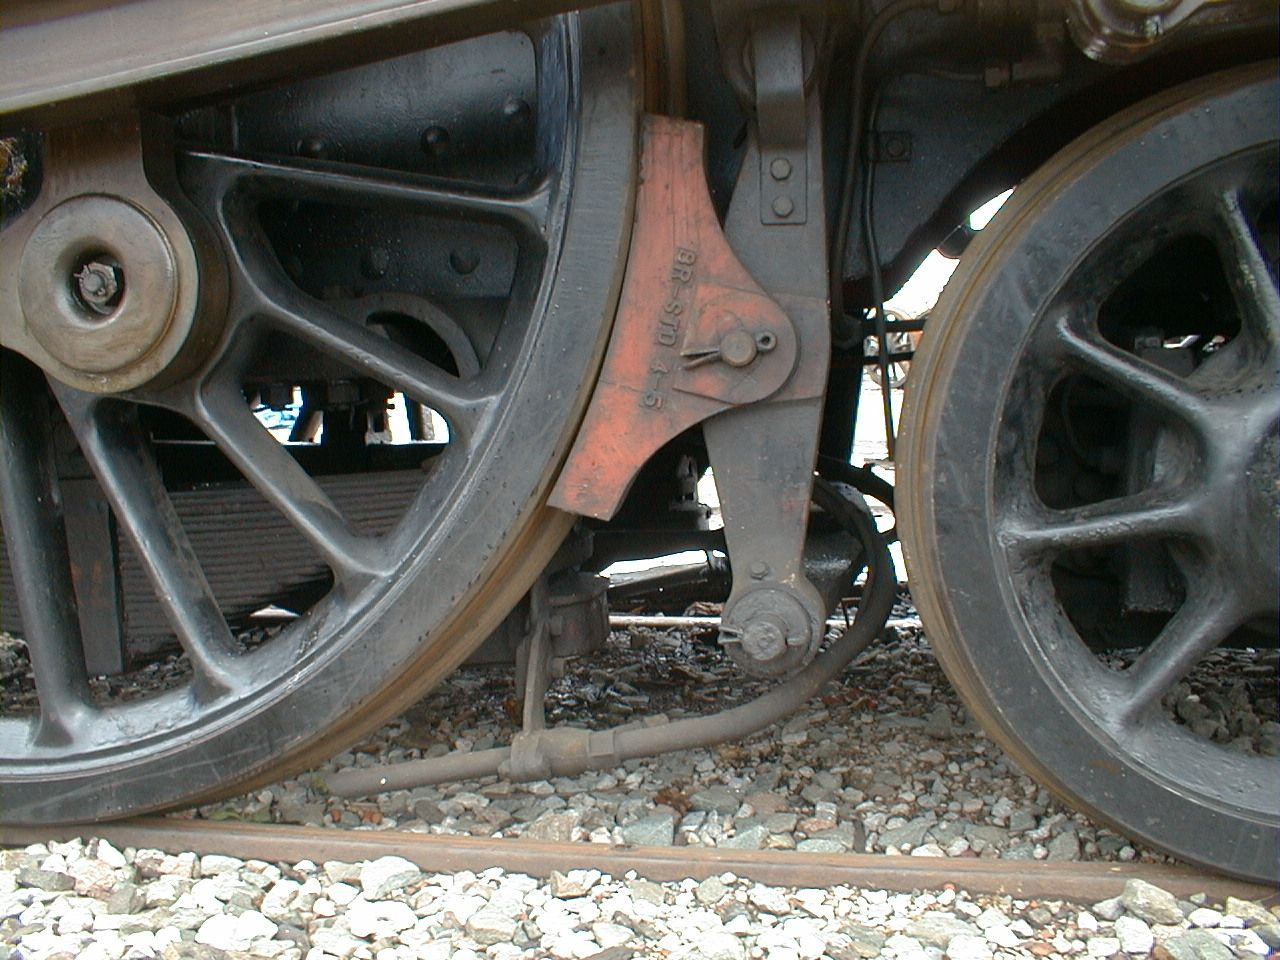 A brake shoe, seen here next to the large